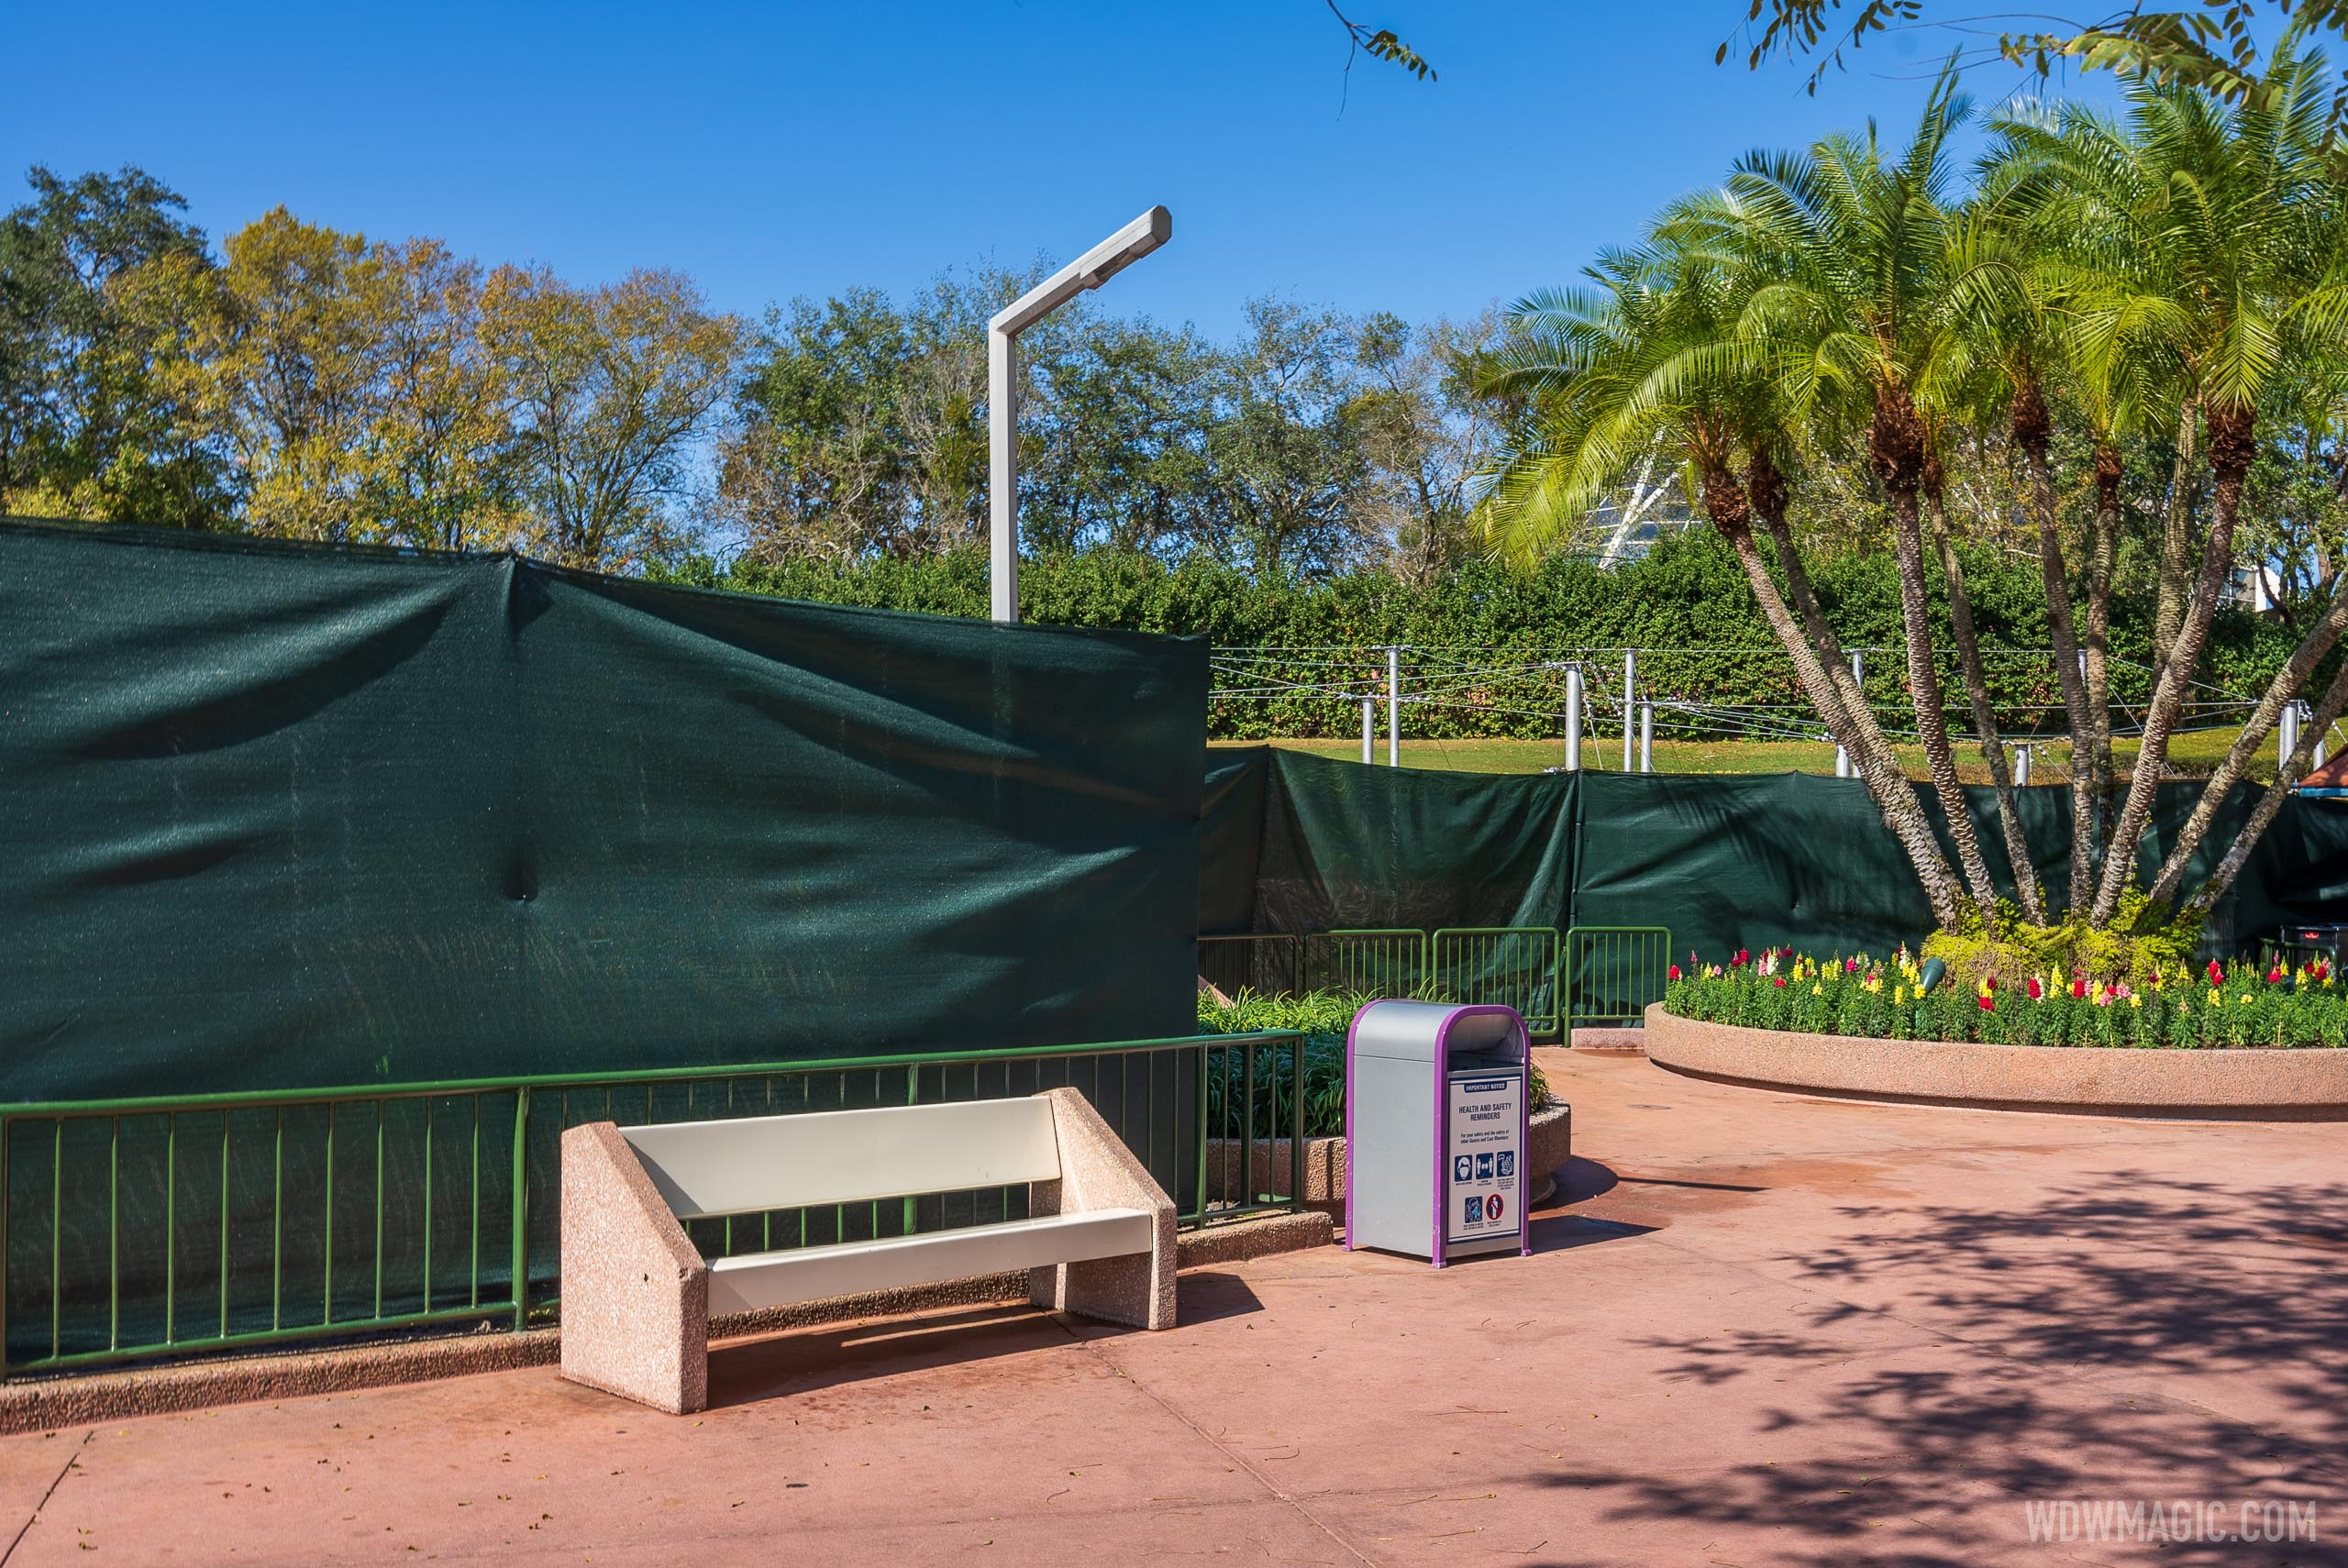 2021 Taste of EPCOT International Flower and Garden Festival preparations